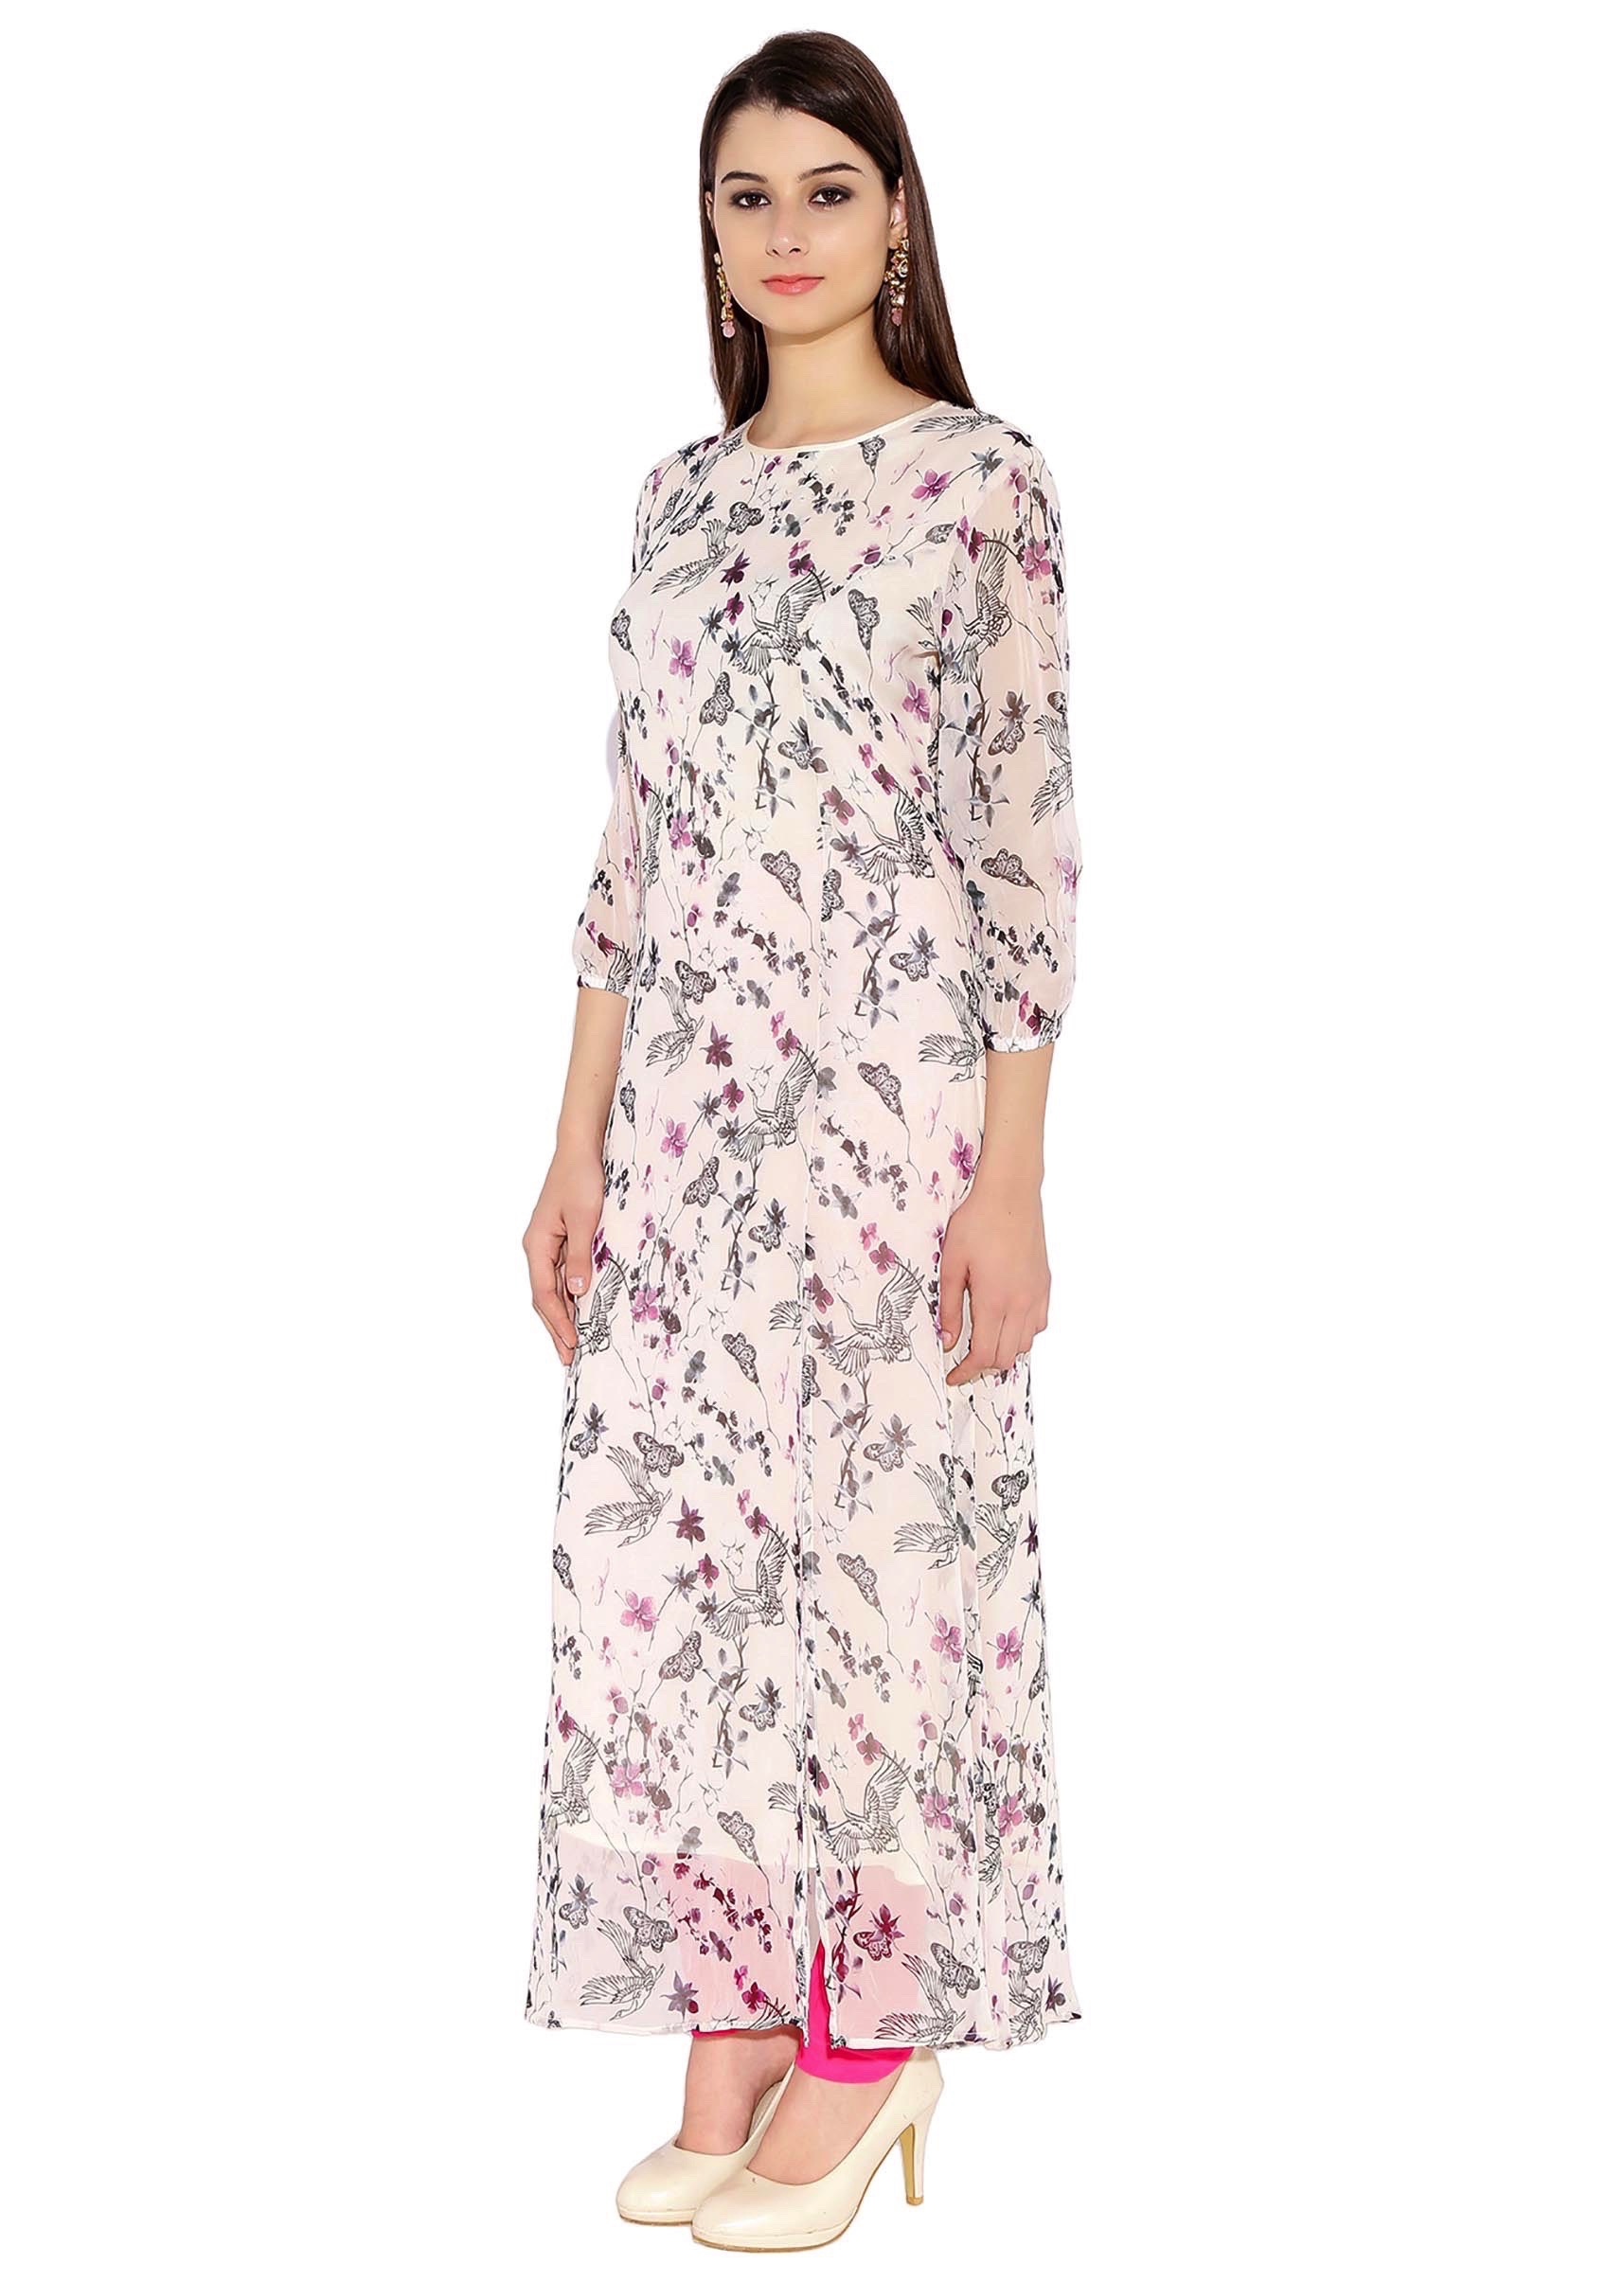 220eec40775 Off White Georgette Kurti With Boat Neck Contemporary Maxi Dress Style Only  On Kalki